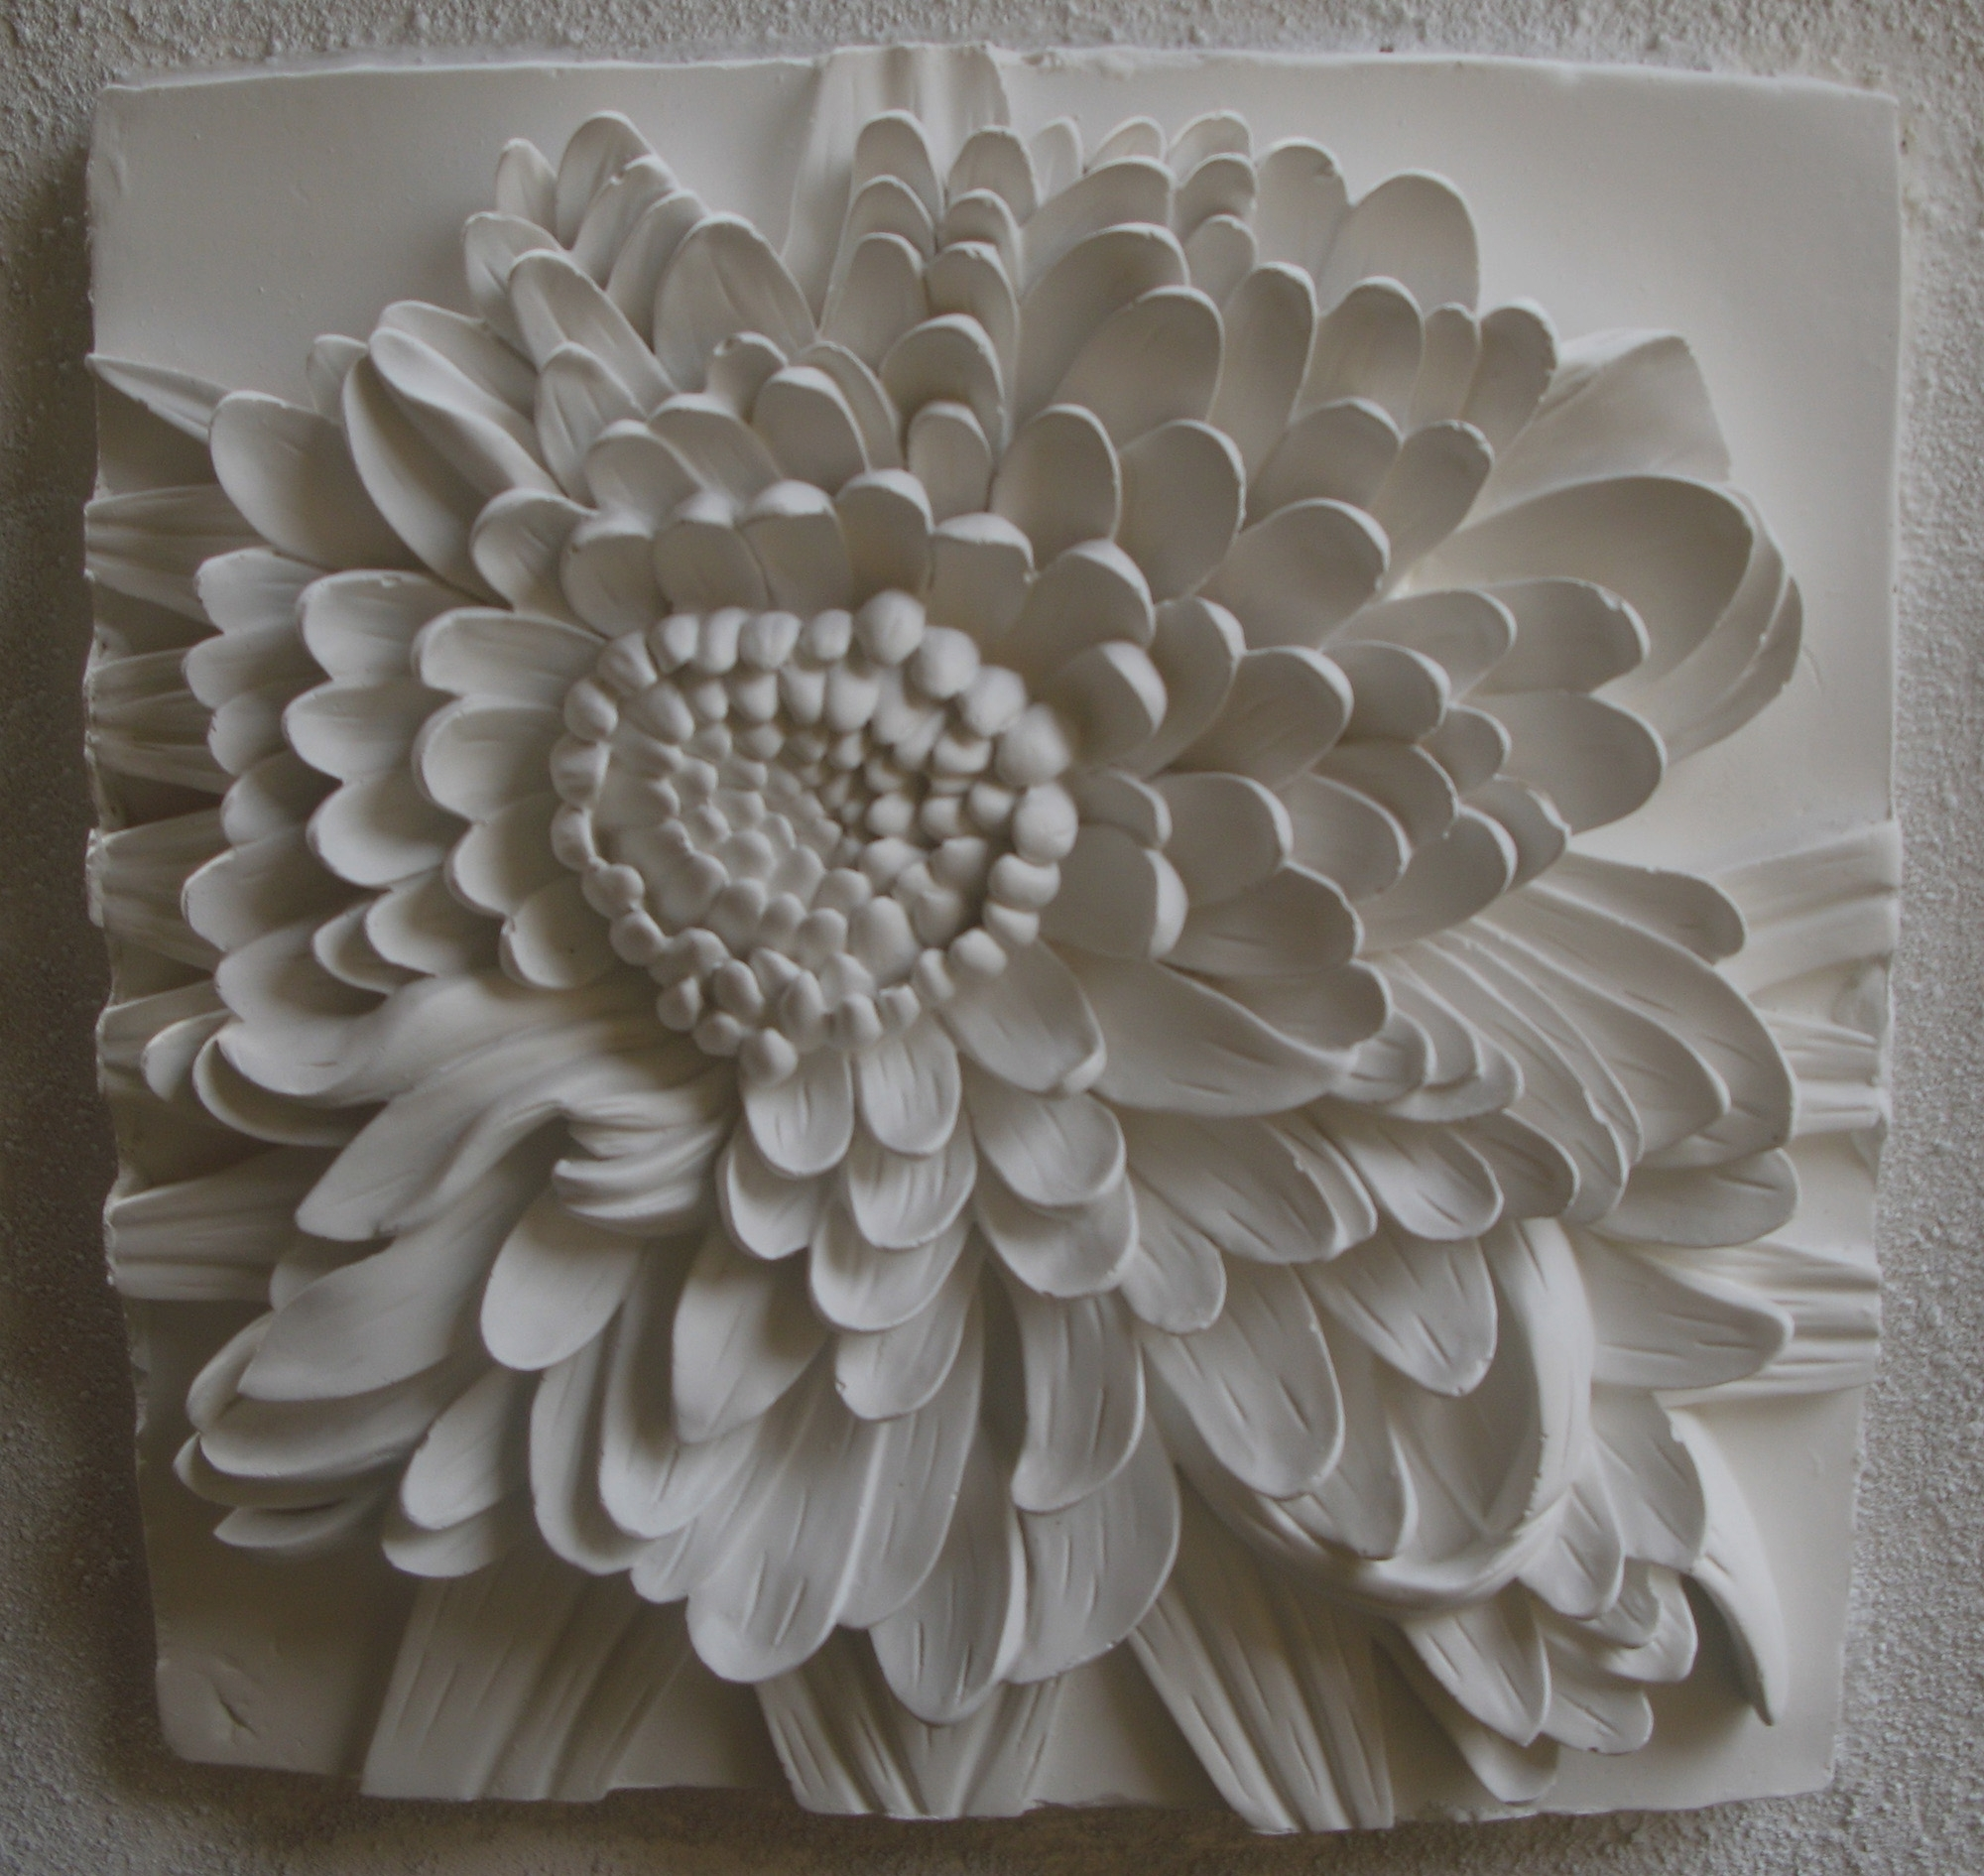 Latest Diy 3D Flower Canvas Wall Art Diy Mothers Day Gift Youtube With  Regard To 3D